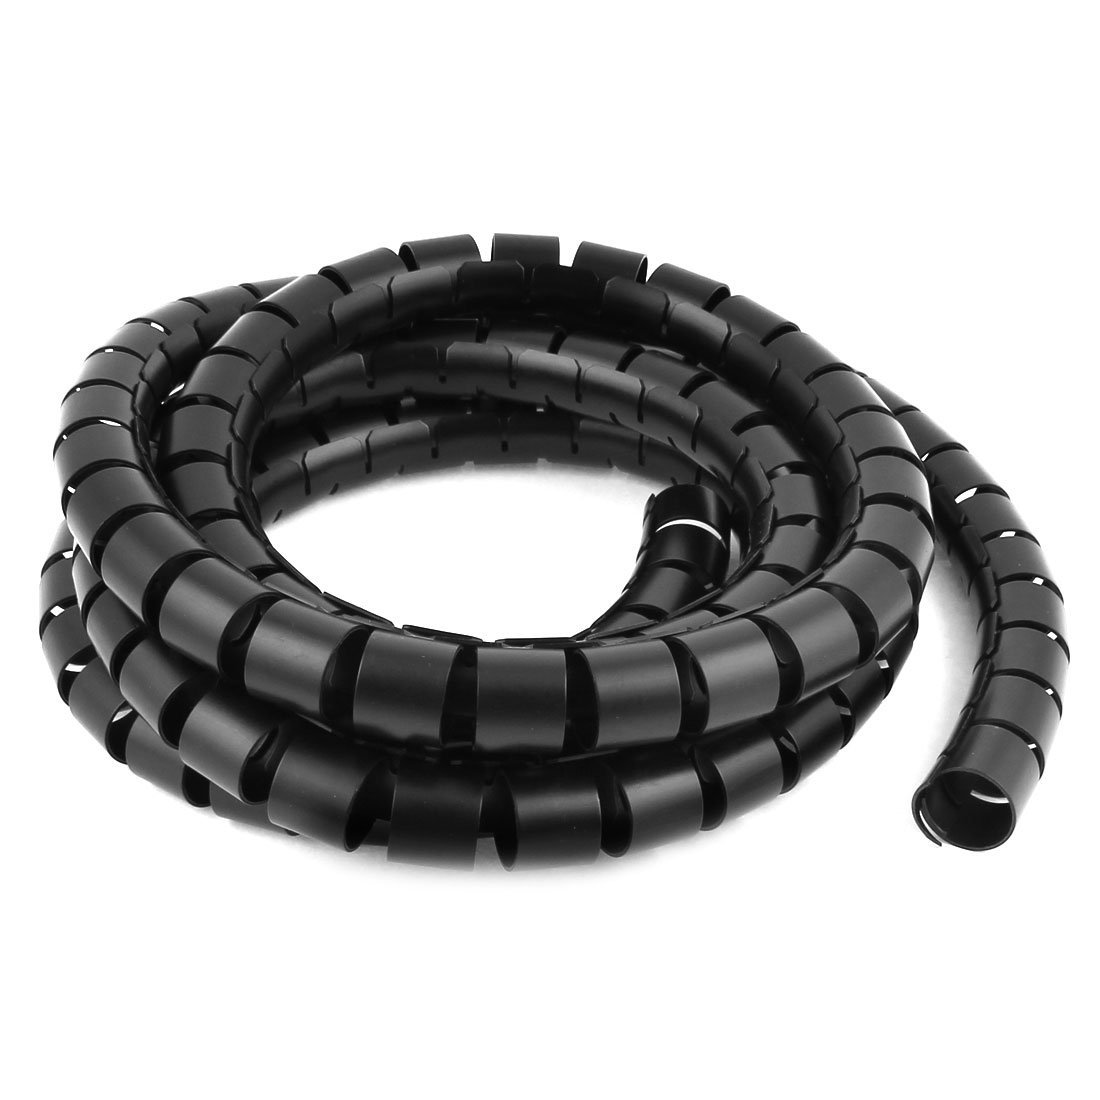 CNIM Hot Spiral Tube Cable Wire Wrap Computer Cord Management 30mmx3M Black